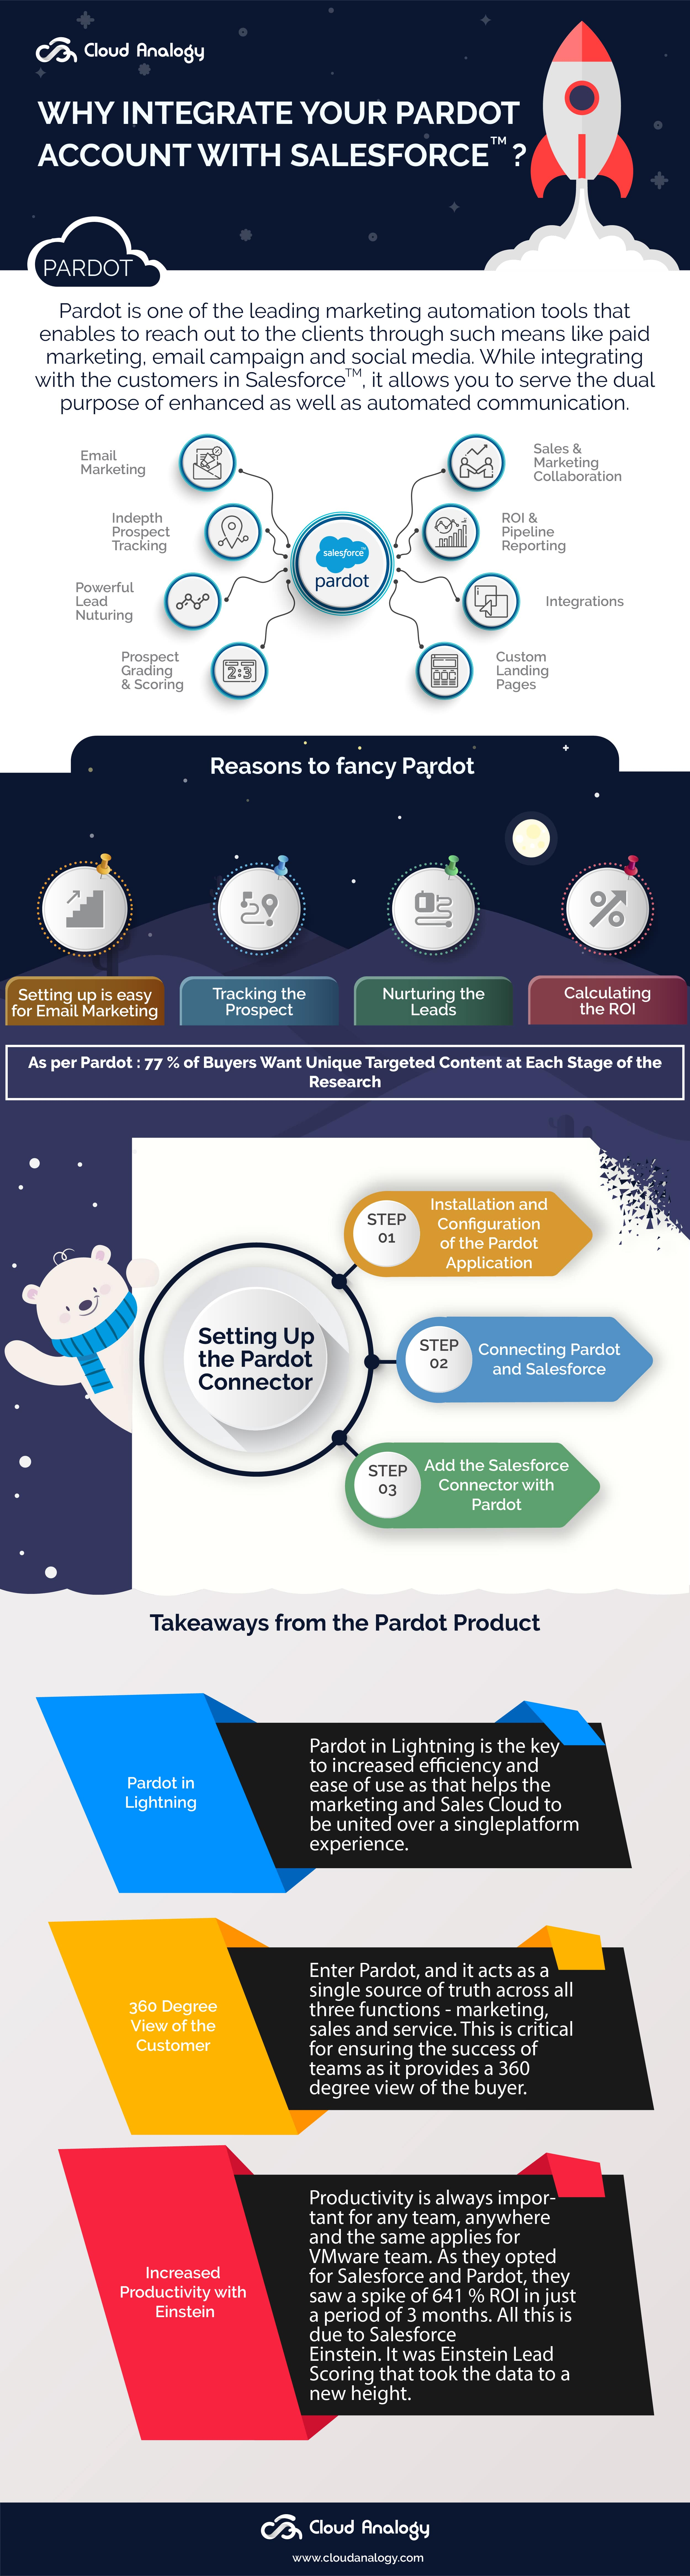 Why integrate your pardot account with Salesforce